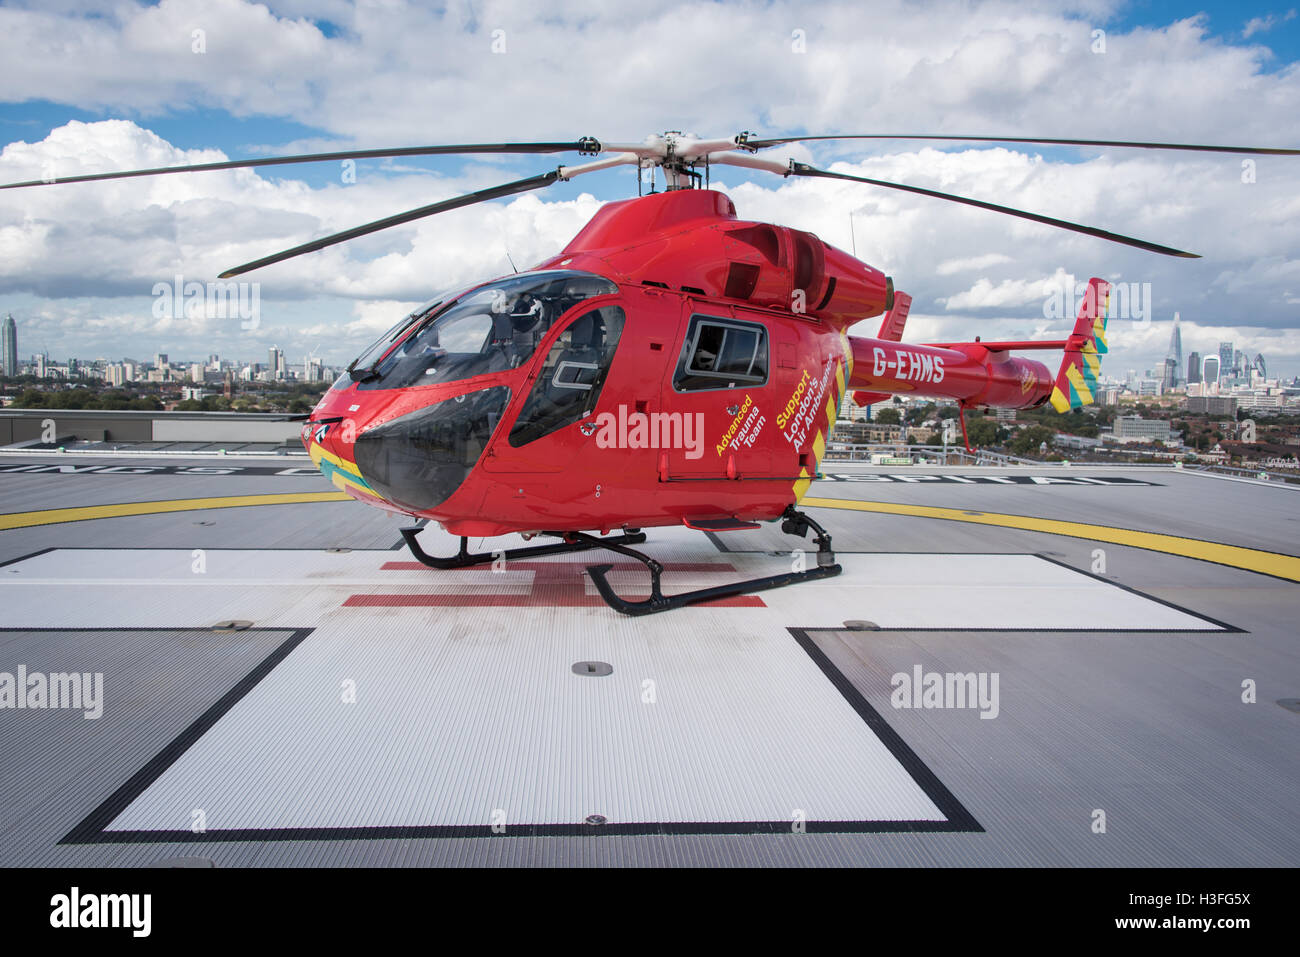 Air Ambulance Helicopter London - Stock Image